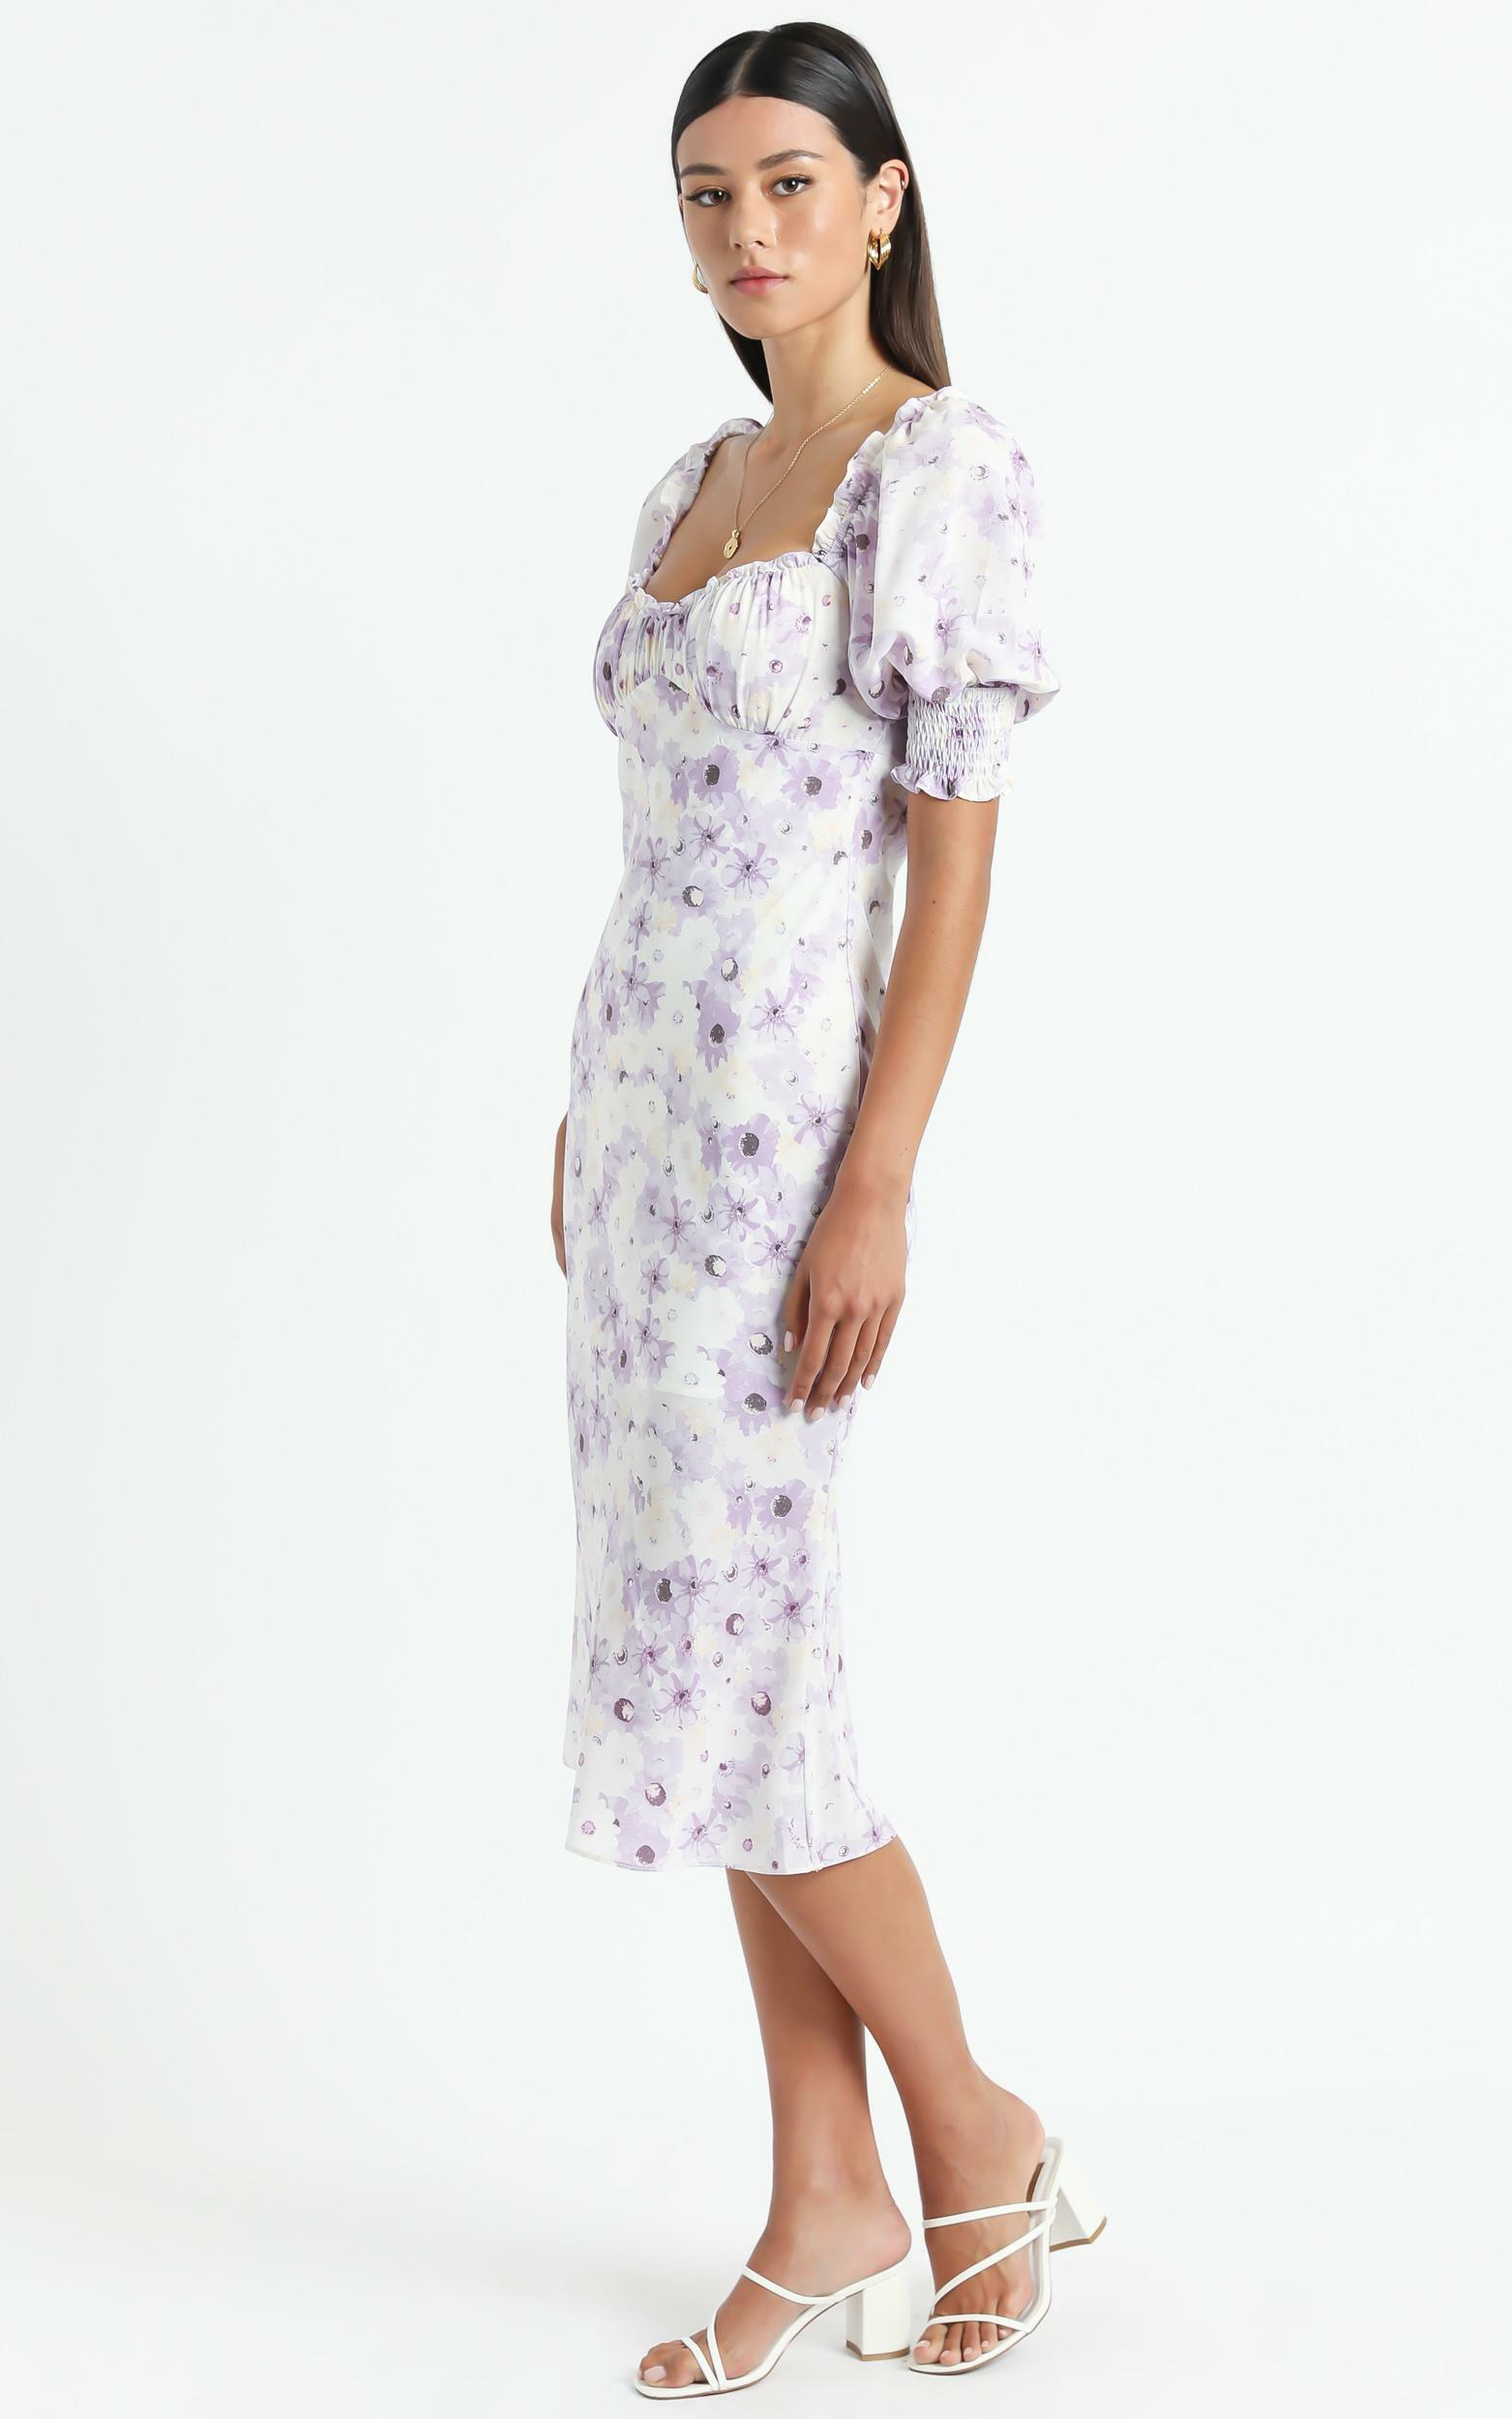 Missouri Dress in Lilac Floral - 14 (XL), PRP3, hi-res image number null